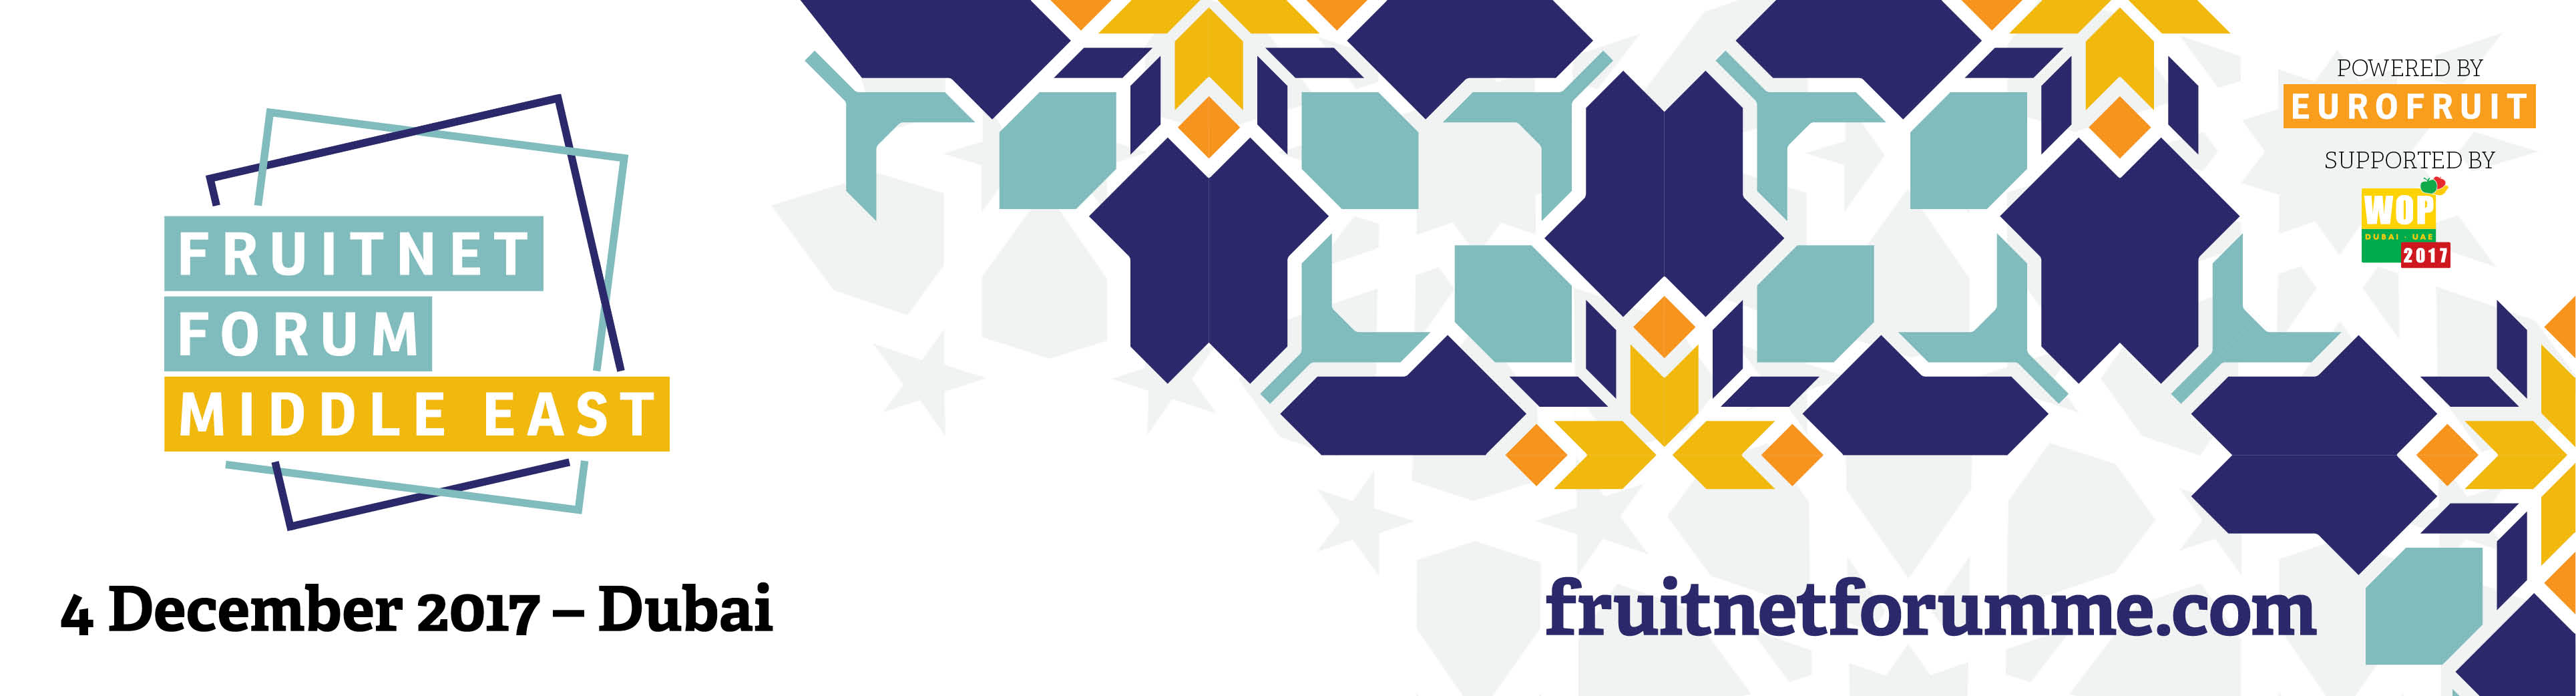 Fruitnet Forum Middle East 2017